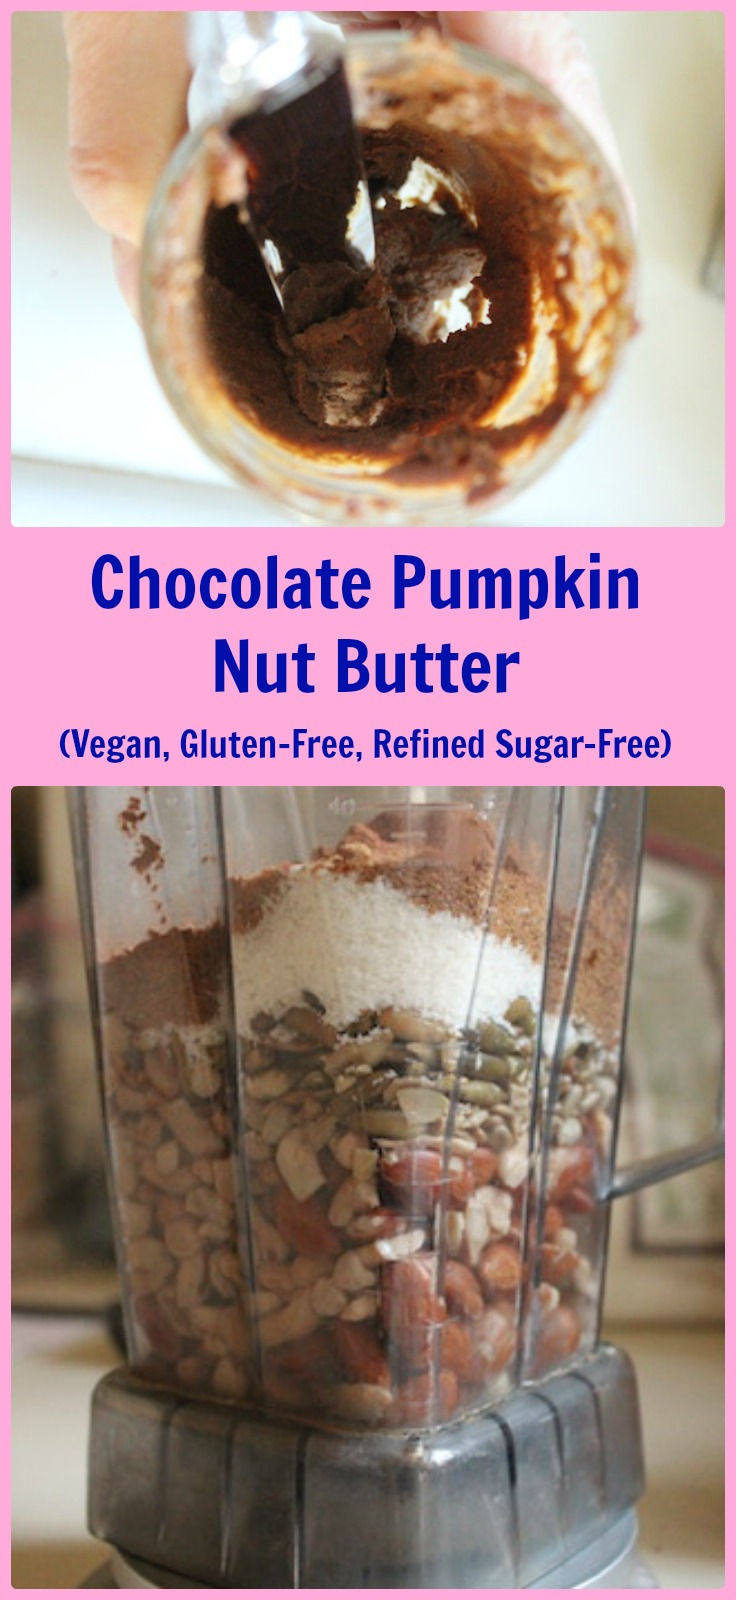 This Chocolate Pumpkin Nut Butter is a quick and healthy way to start your day. Soaking almonds and cashews overnight makes them easy to blend with your favorite seeds, coconut, cocoa and pumpkin, so you can feel good about eating this slightly sweetened boost of protein on your toast in the morning. Refined sugar-free, vegan and gluten-free, it's full of flavor and will even make a Nutella-craving kid happy. | www.tastyoasis.net